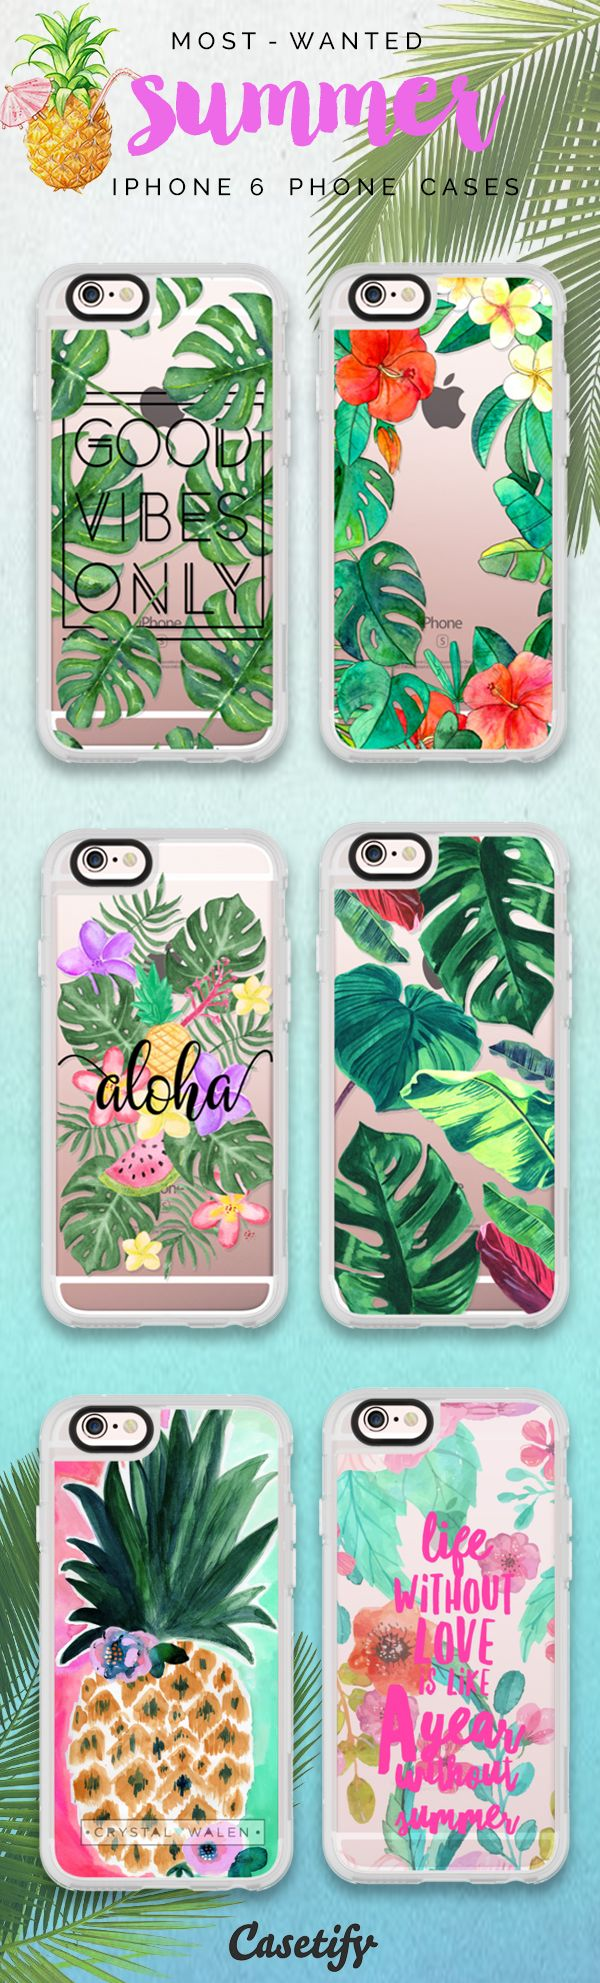 Most favourite Summer 2016 iPhone 6 protective phone case designs | Click through to see more iPhone phone case idea. Summer is upon us! >>> https://www.casetify.com/collections/summer | @casetify http://amzn.to/2qZ3RzU